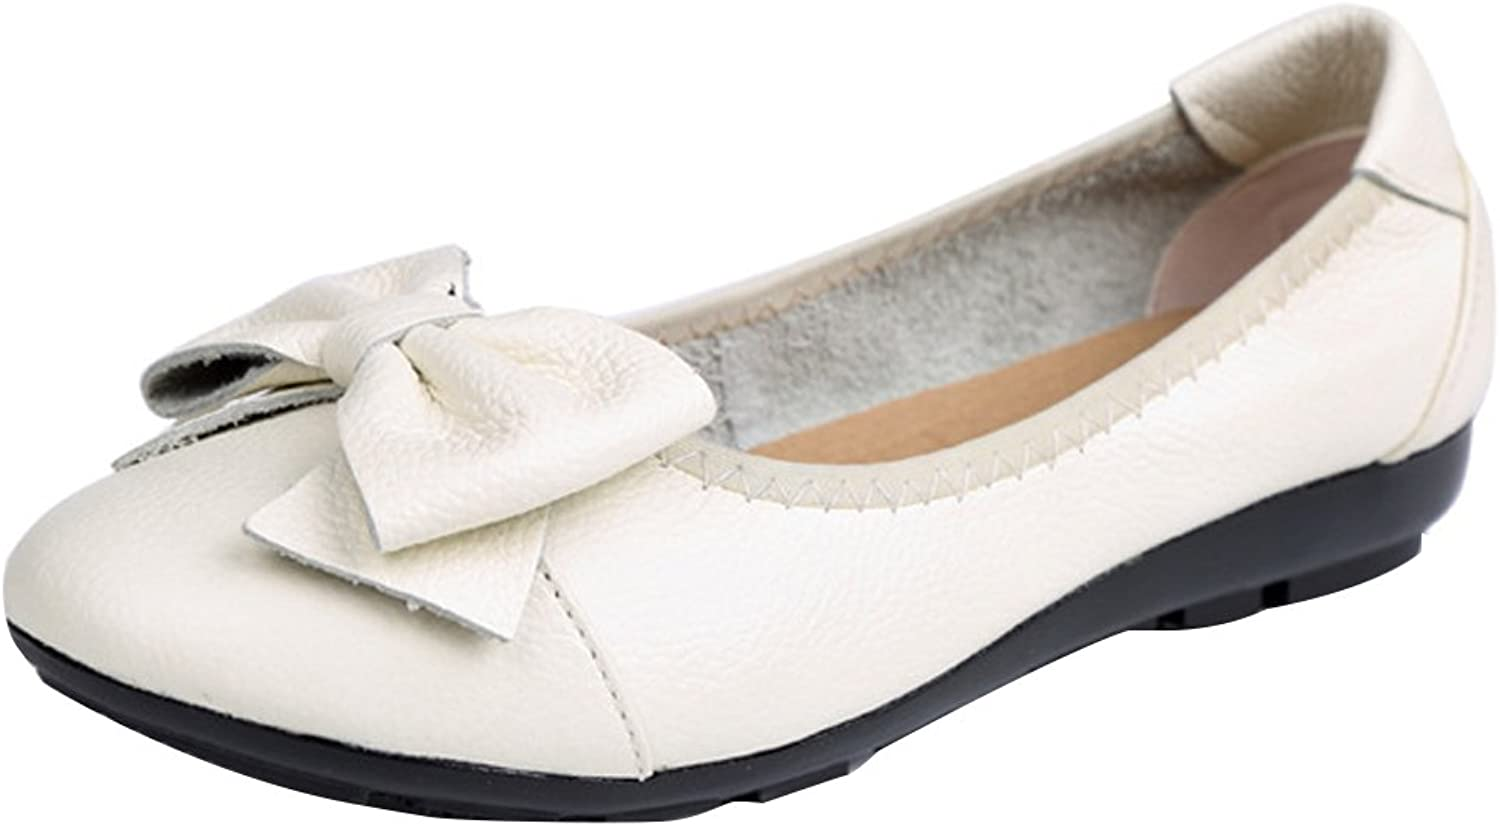 Zoulee Womens Point Toe Bowknot Ballet Comfort Slip on Flats shoes